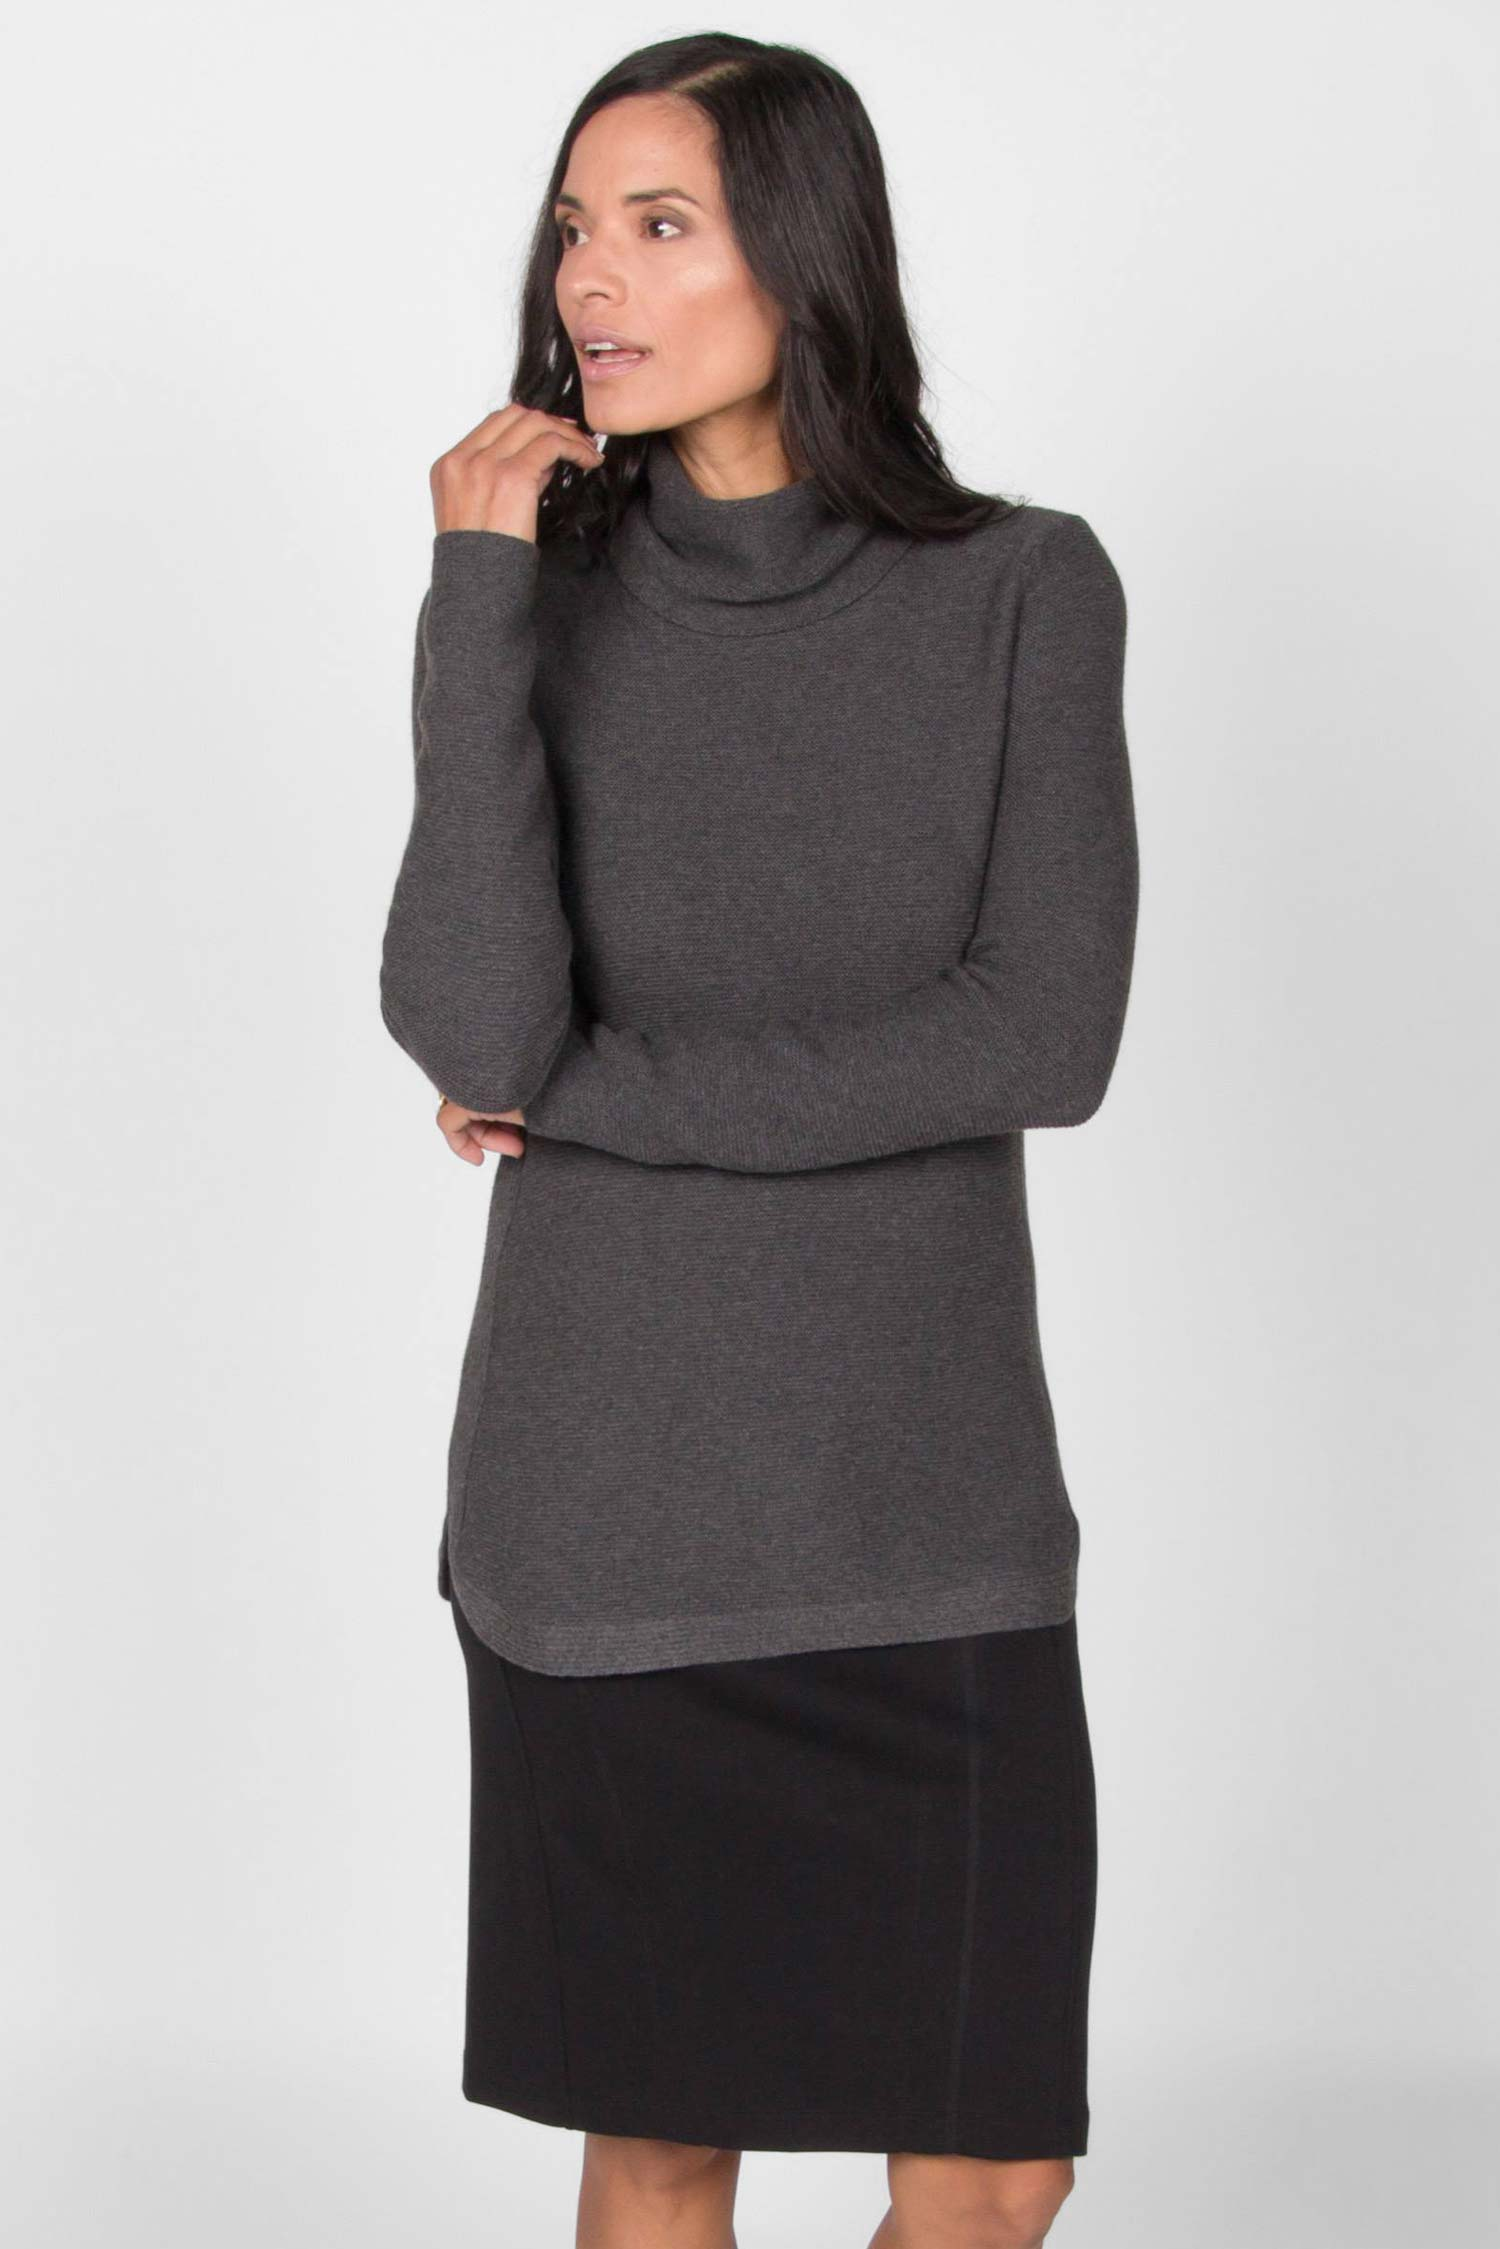 Womens Funnel Neck Sweater | Organic Cotton Clothing | Gray